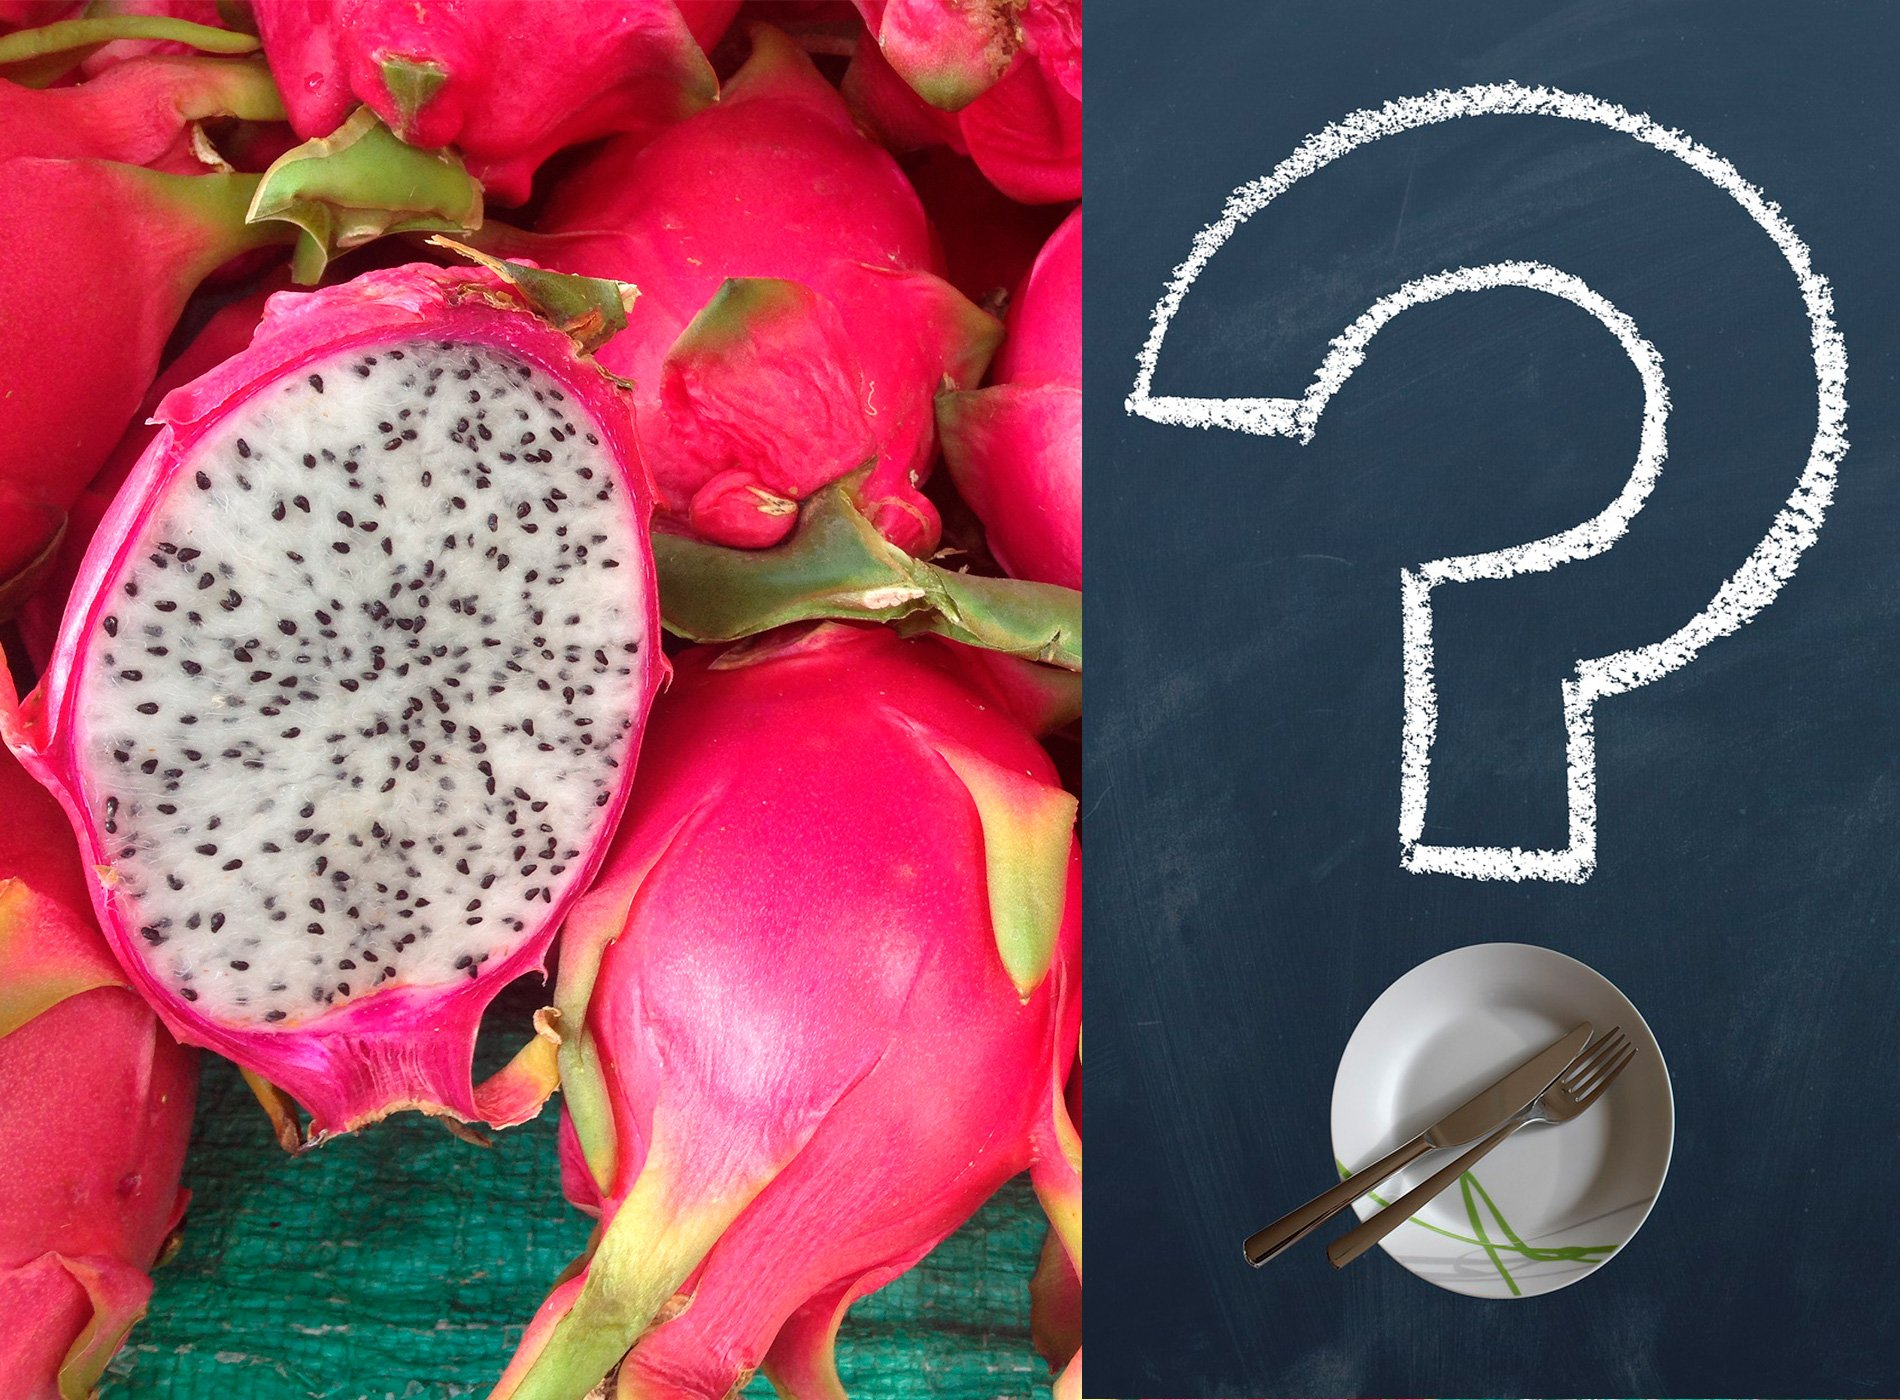 Dragon Fruit with question mark